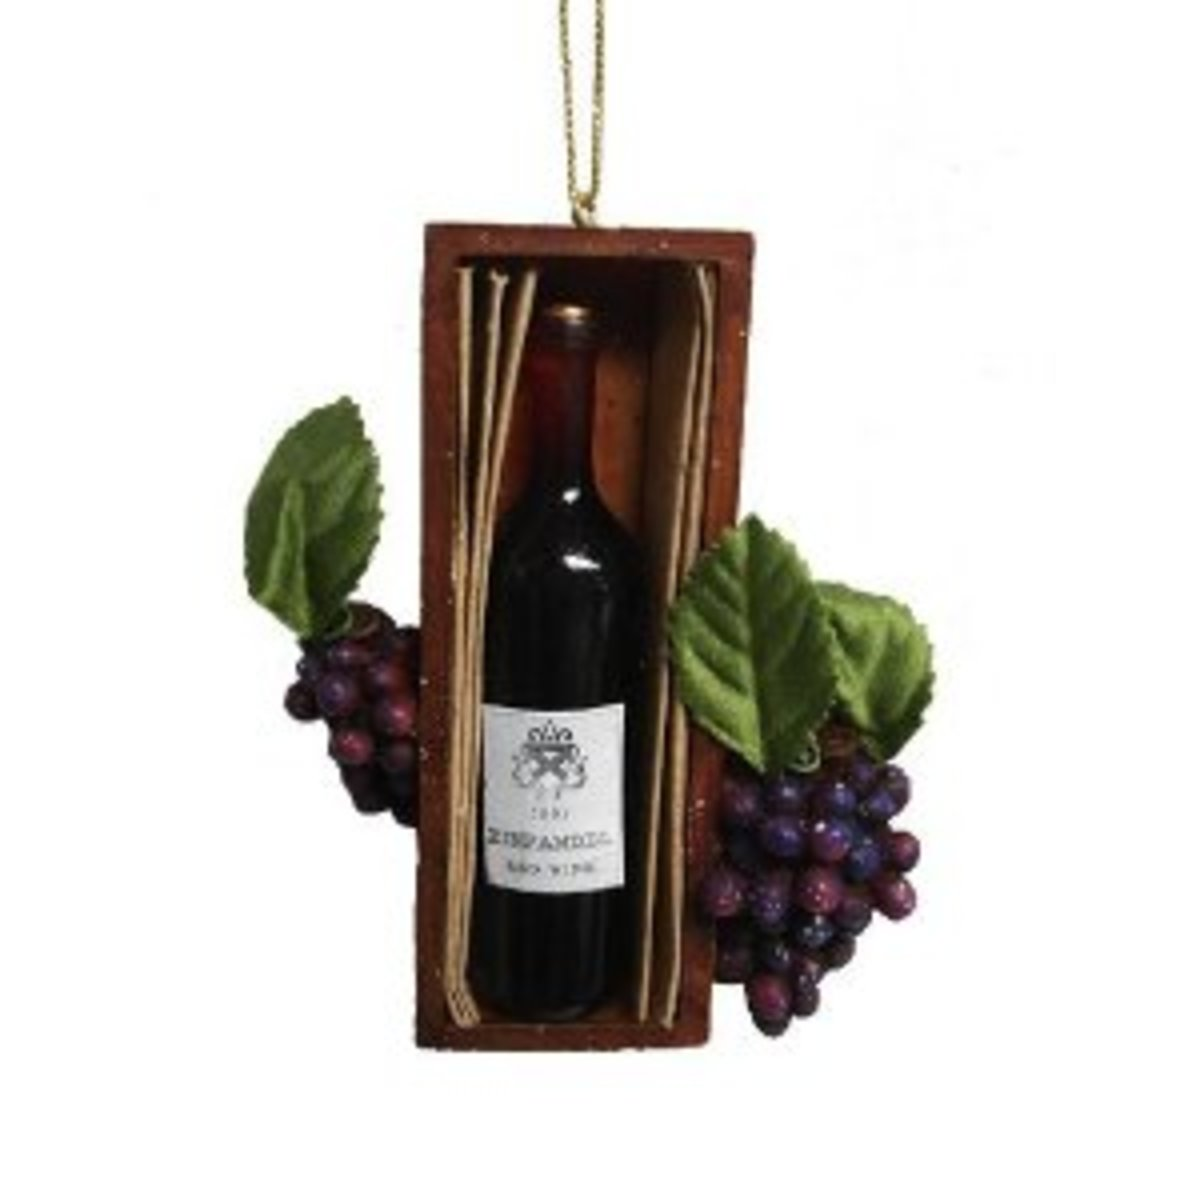 You'd need a heavy branch to hang this wine-bottle Christmas ornament!